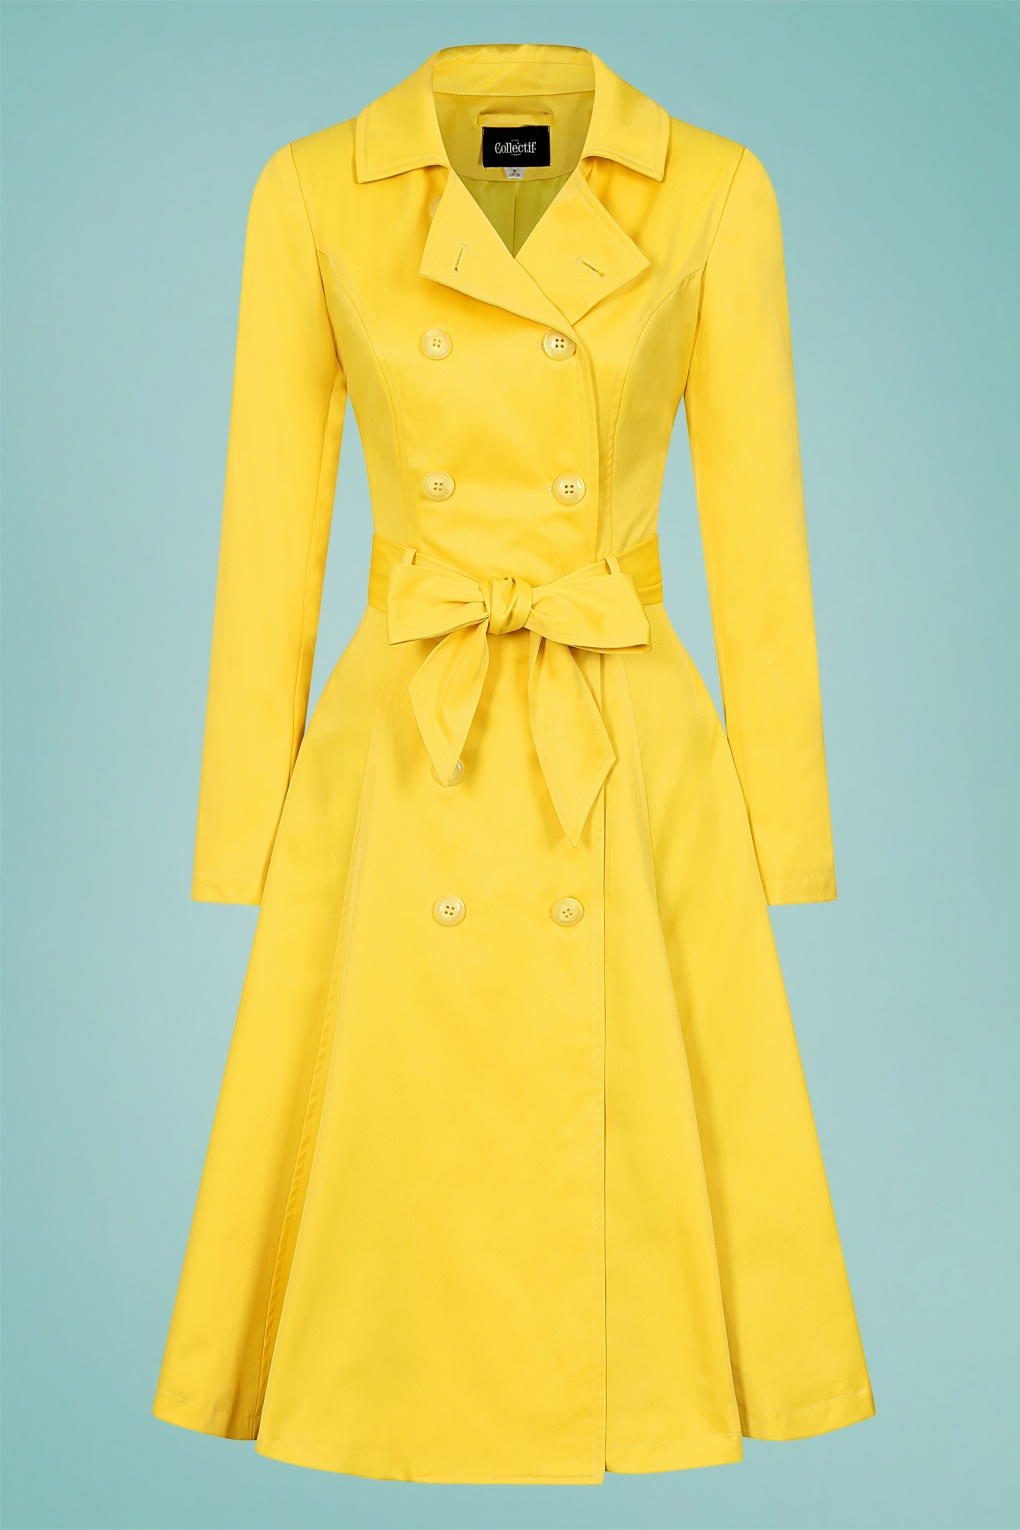 Vintage Coats & Jackets | Retro Coats and Jackets 40s Korrina Swing Trench Coat in Yellow £19.95 AT vintagedancer.com